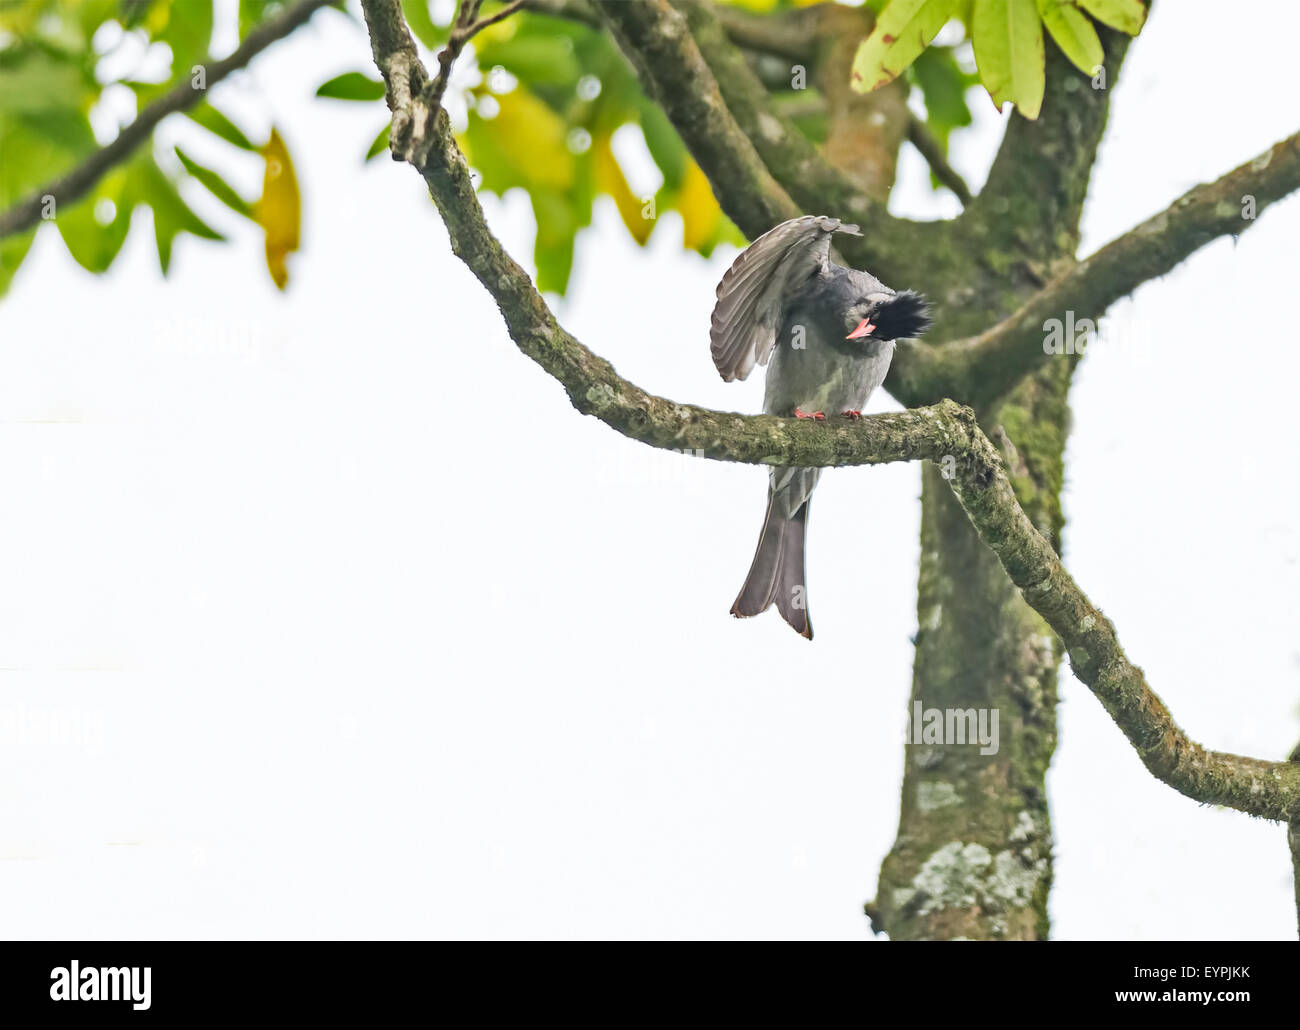 Bird, Himalayan Black Bulbul perched on a tree with copy space - Stock Image